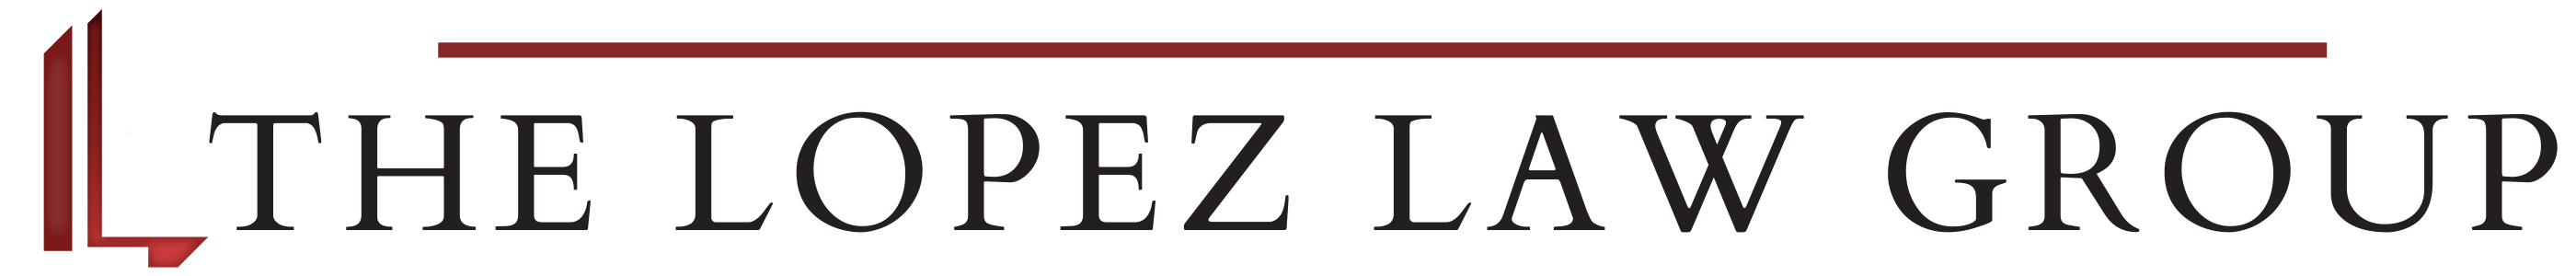 lopez law logo